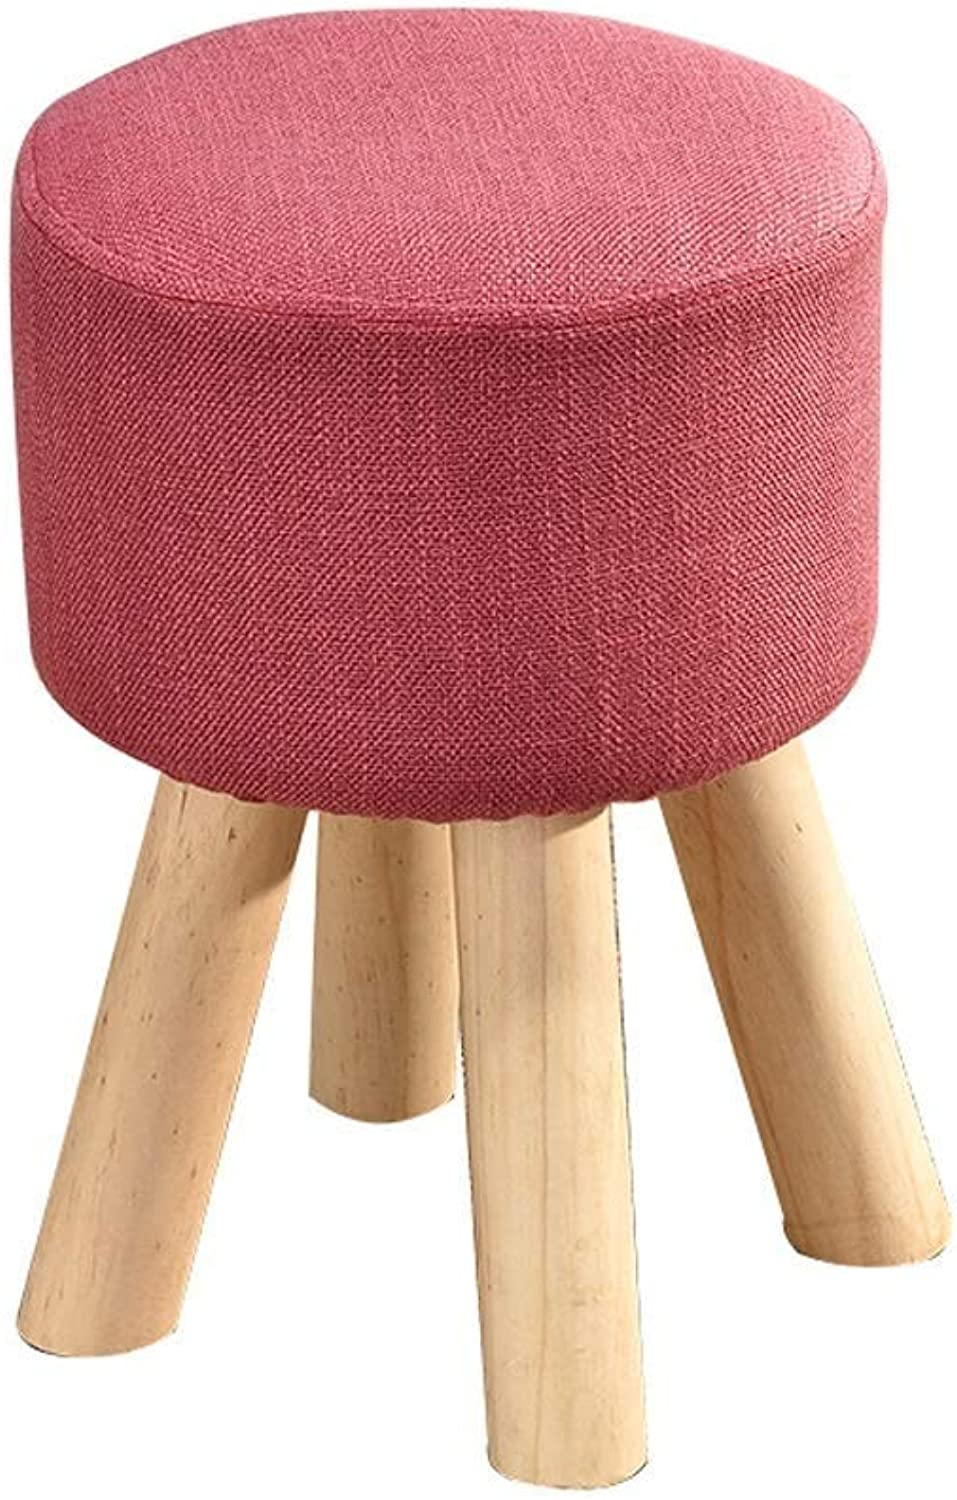 Footstool Change shoes Bench Simple Solid Wooden Legs Upholstered Seating Chair Round Wood Stool Home Foot Stools LEBAO (color   pink)